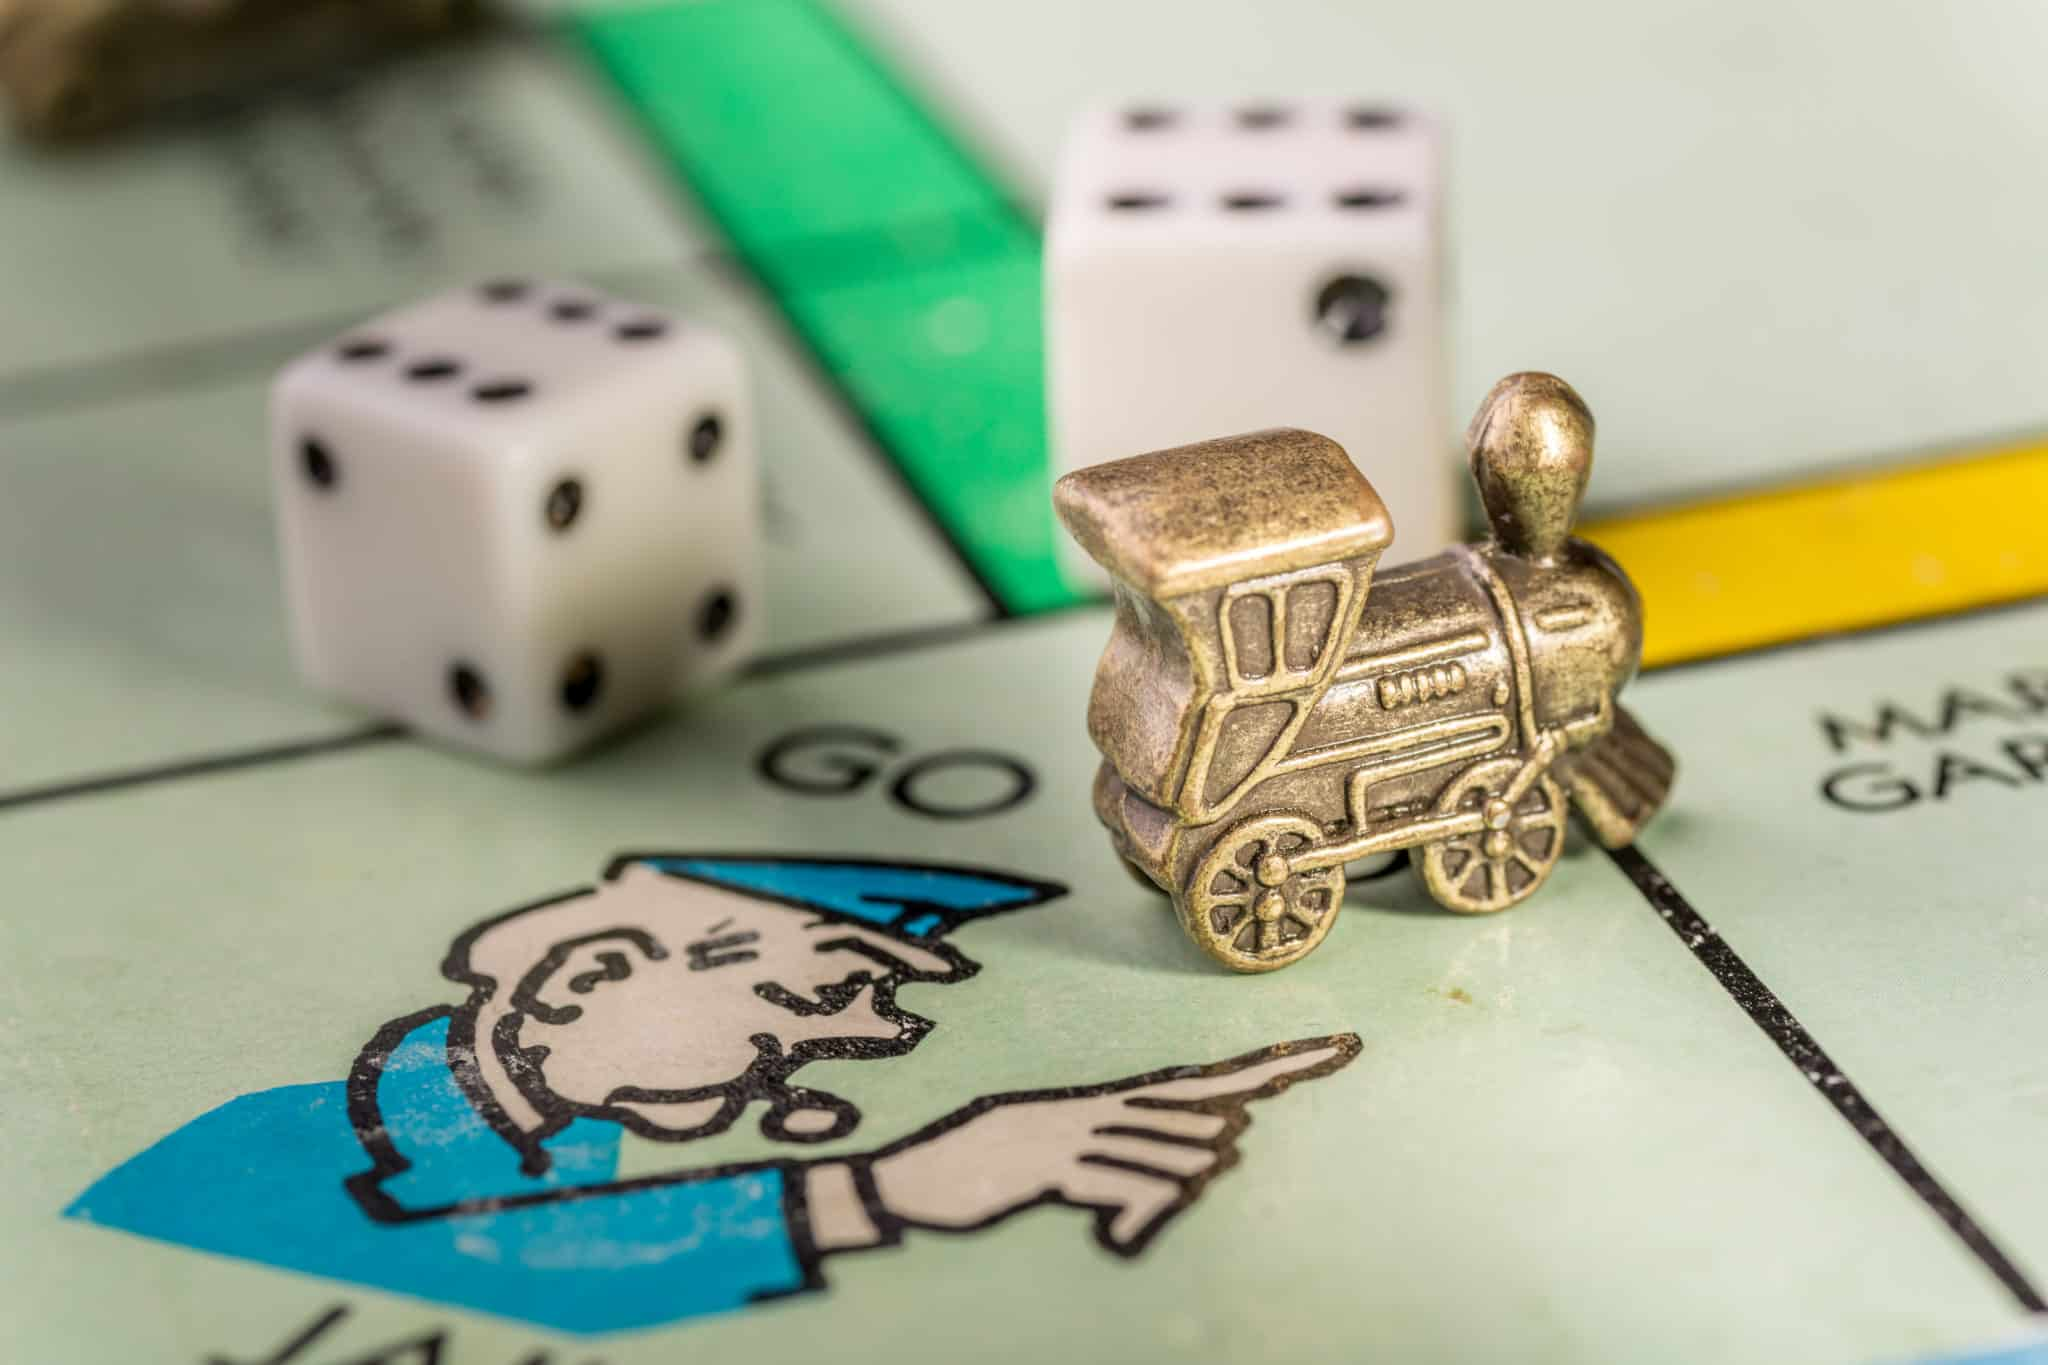 Train monopoly piece on go to jail space